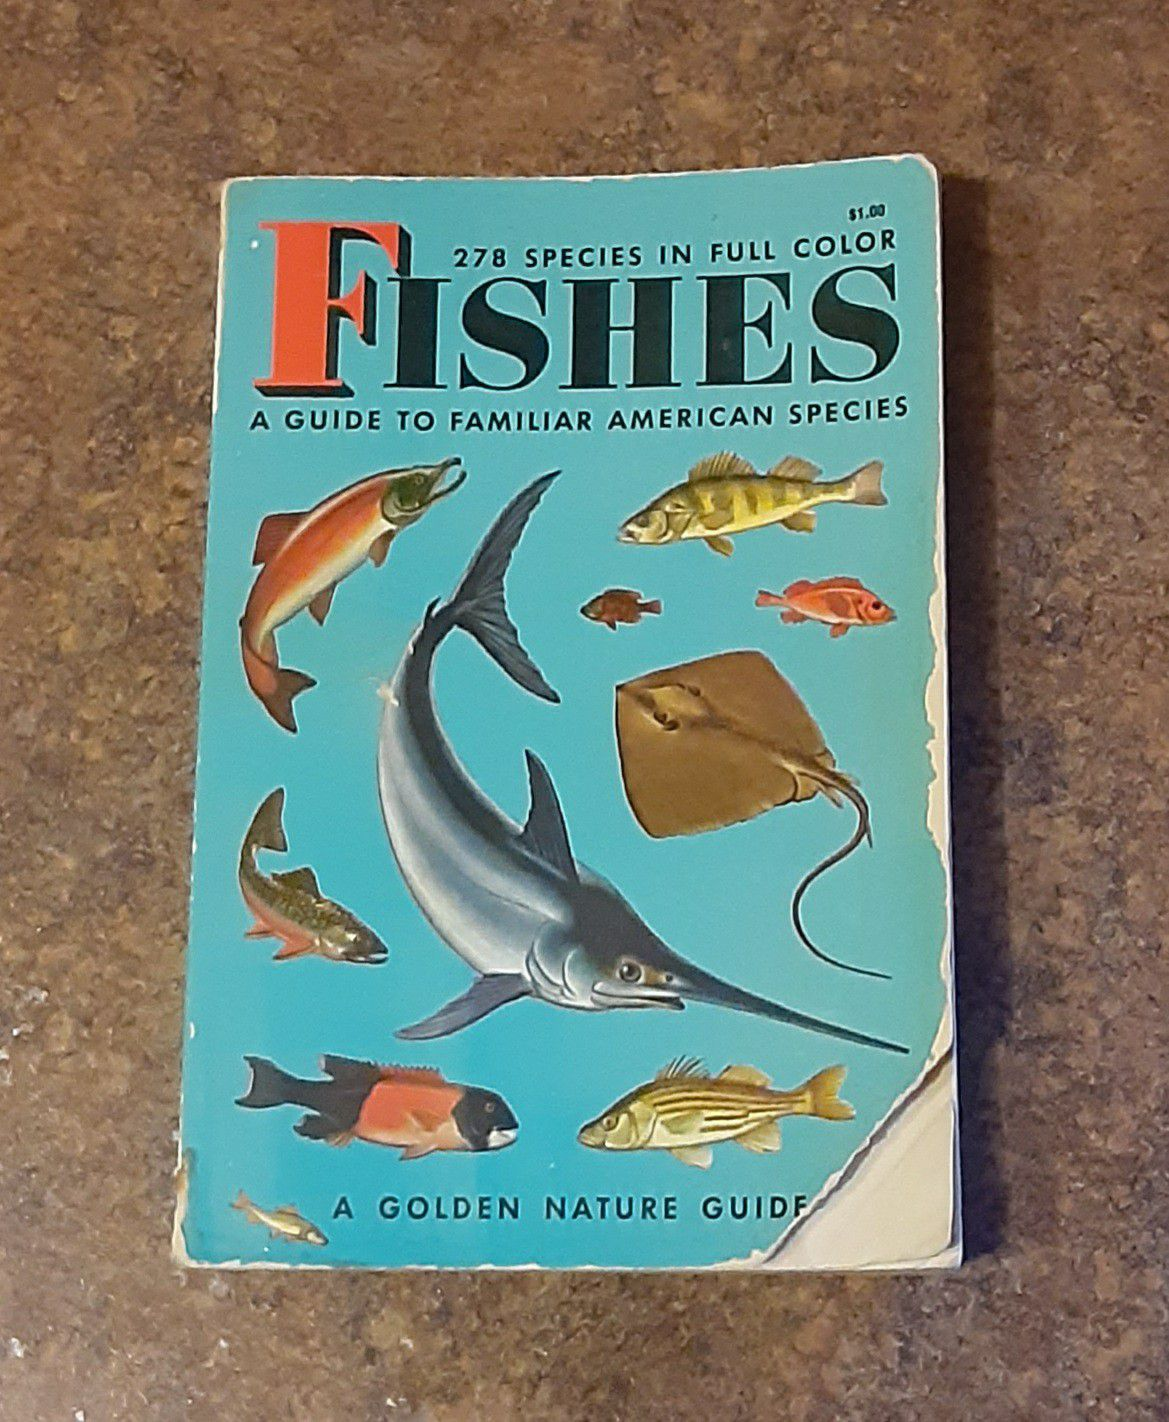 Vintage 1955 Fishes Miniature Softcover Children's Book